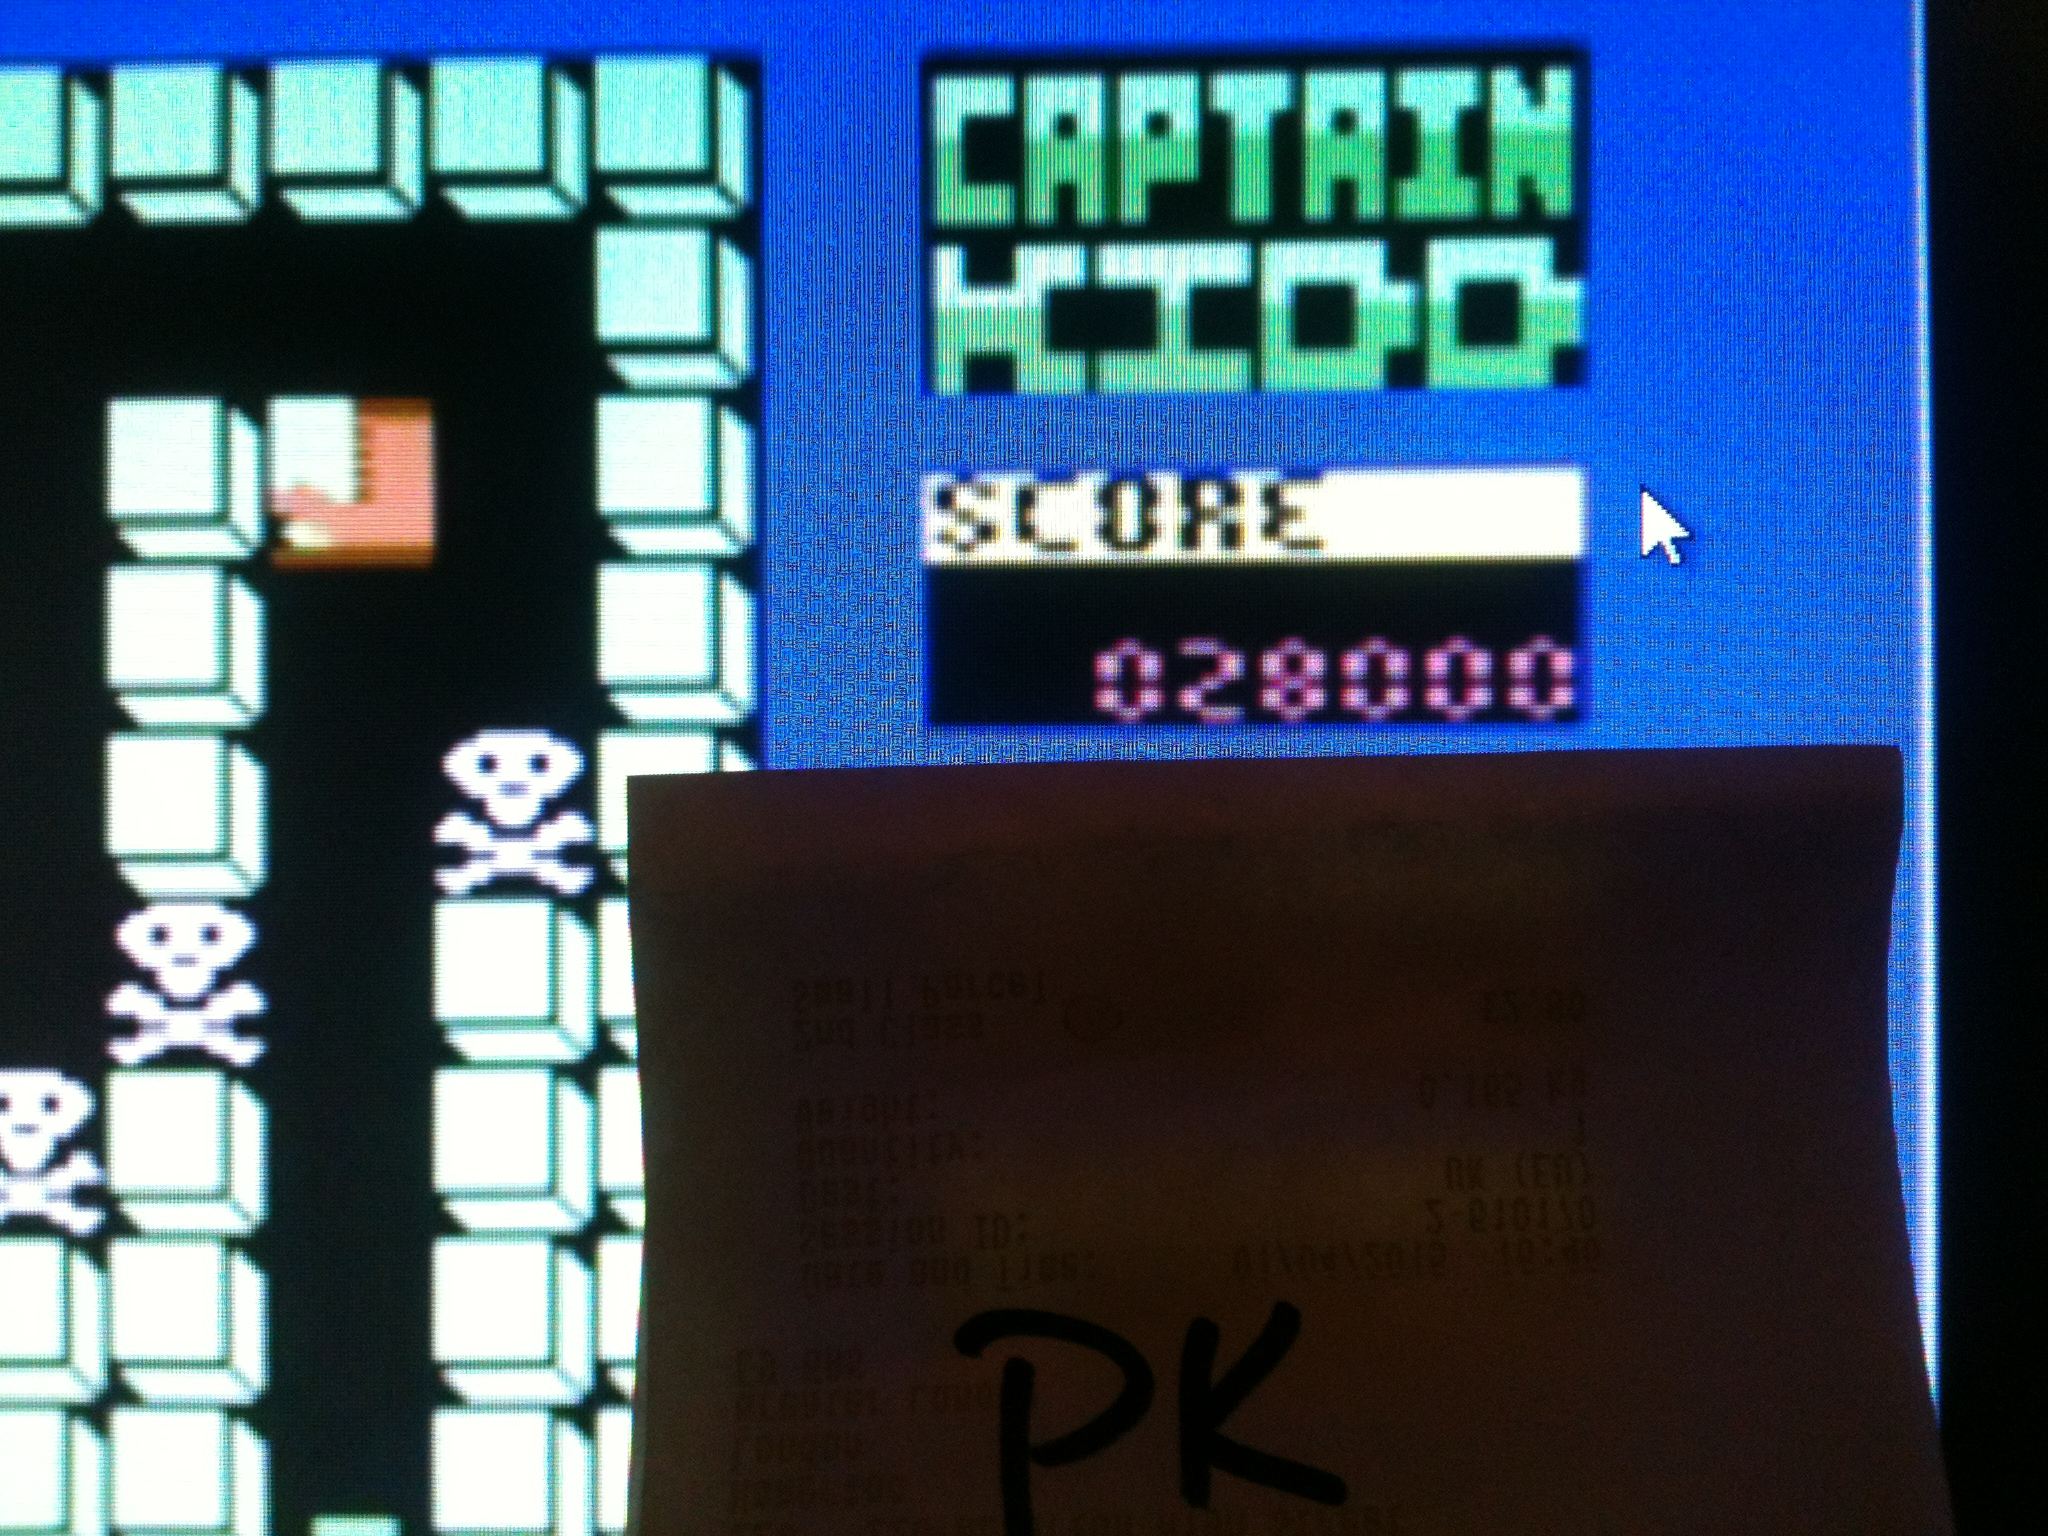 kernzy: Captain Kidd (Commodore 64 Emulated) 28,000 points on 2015-09-22 17:11:24